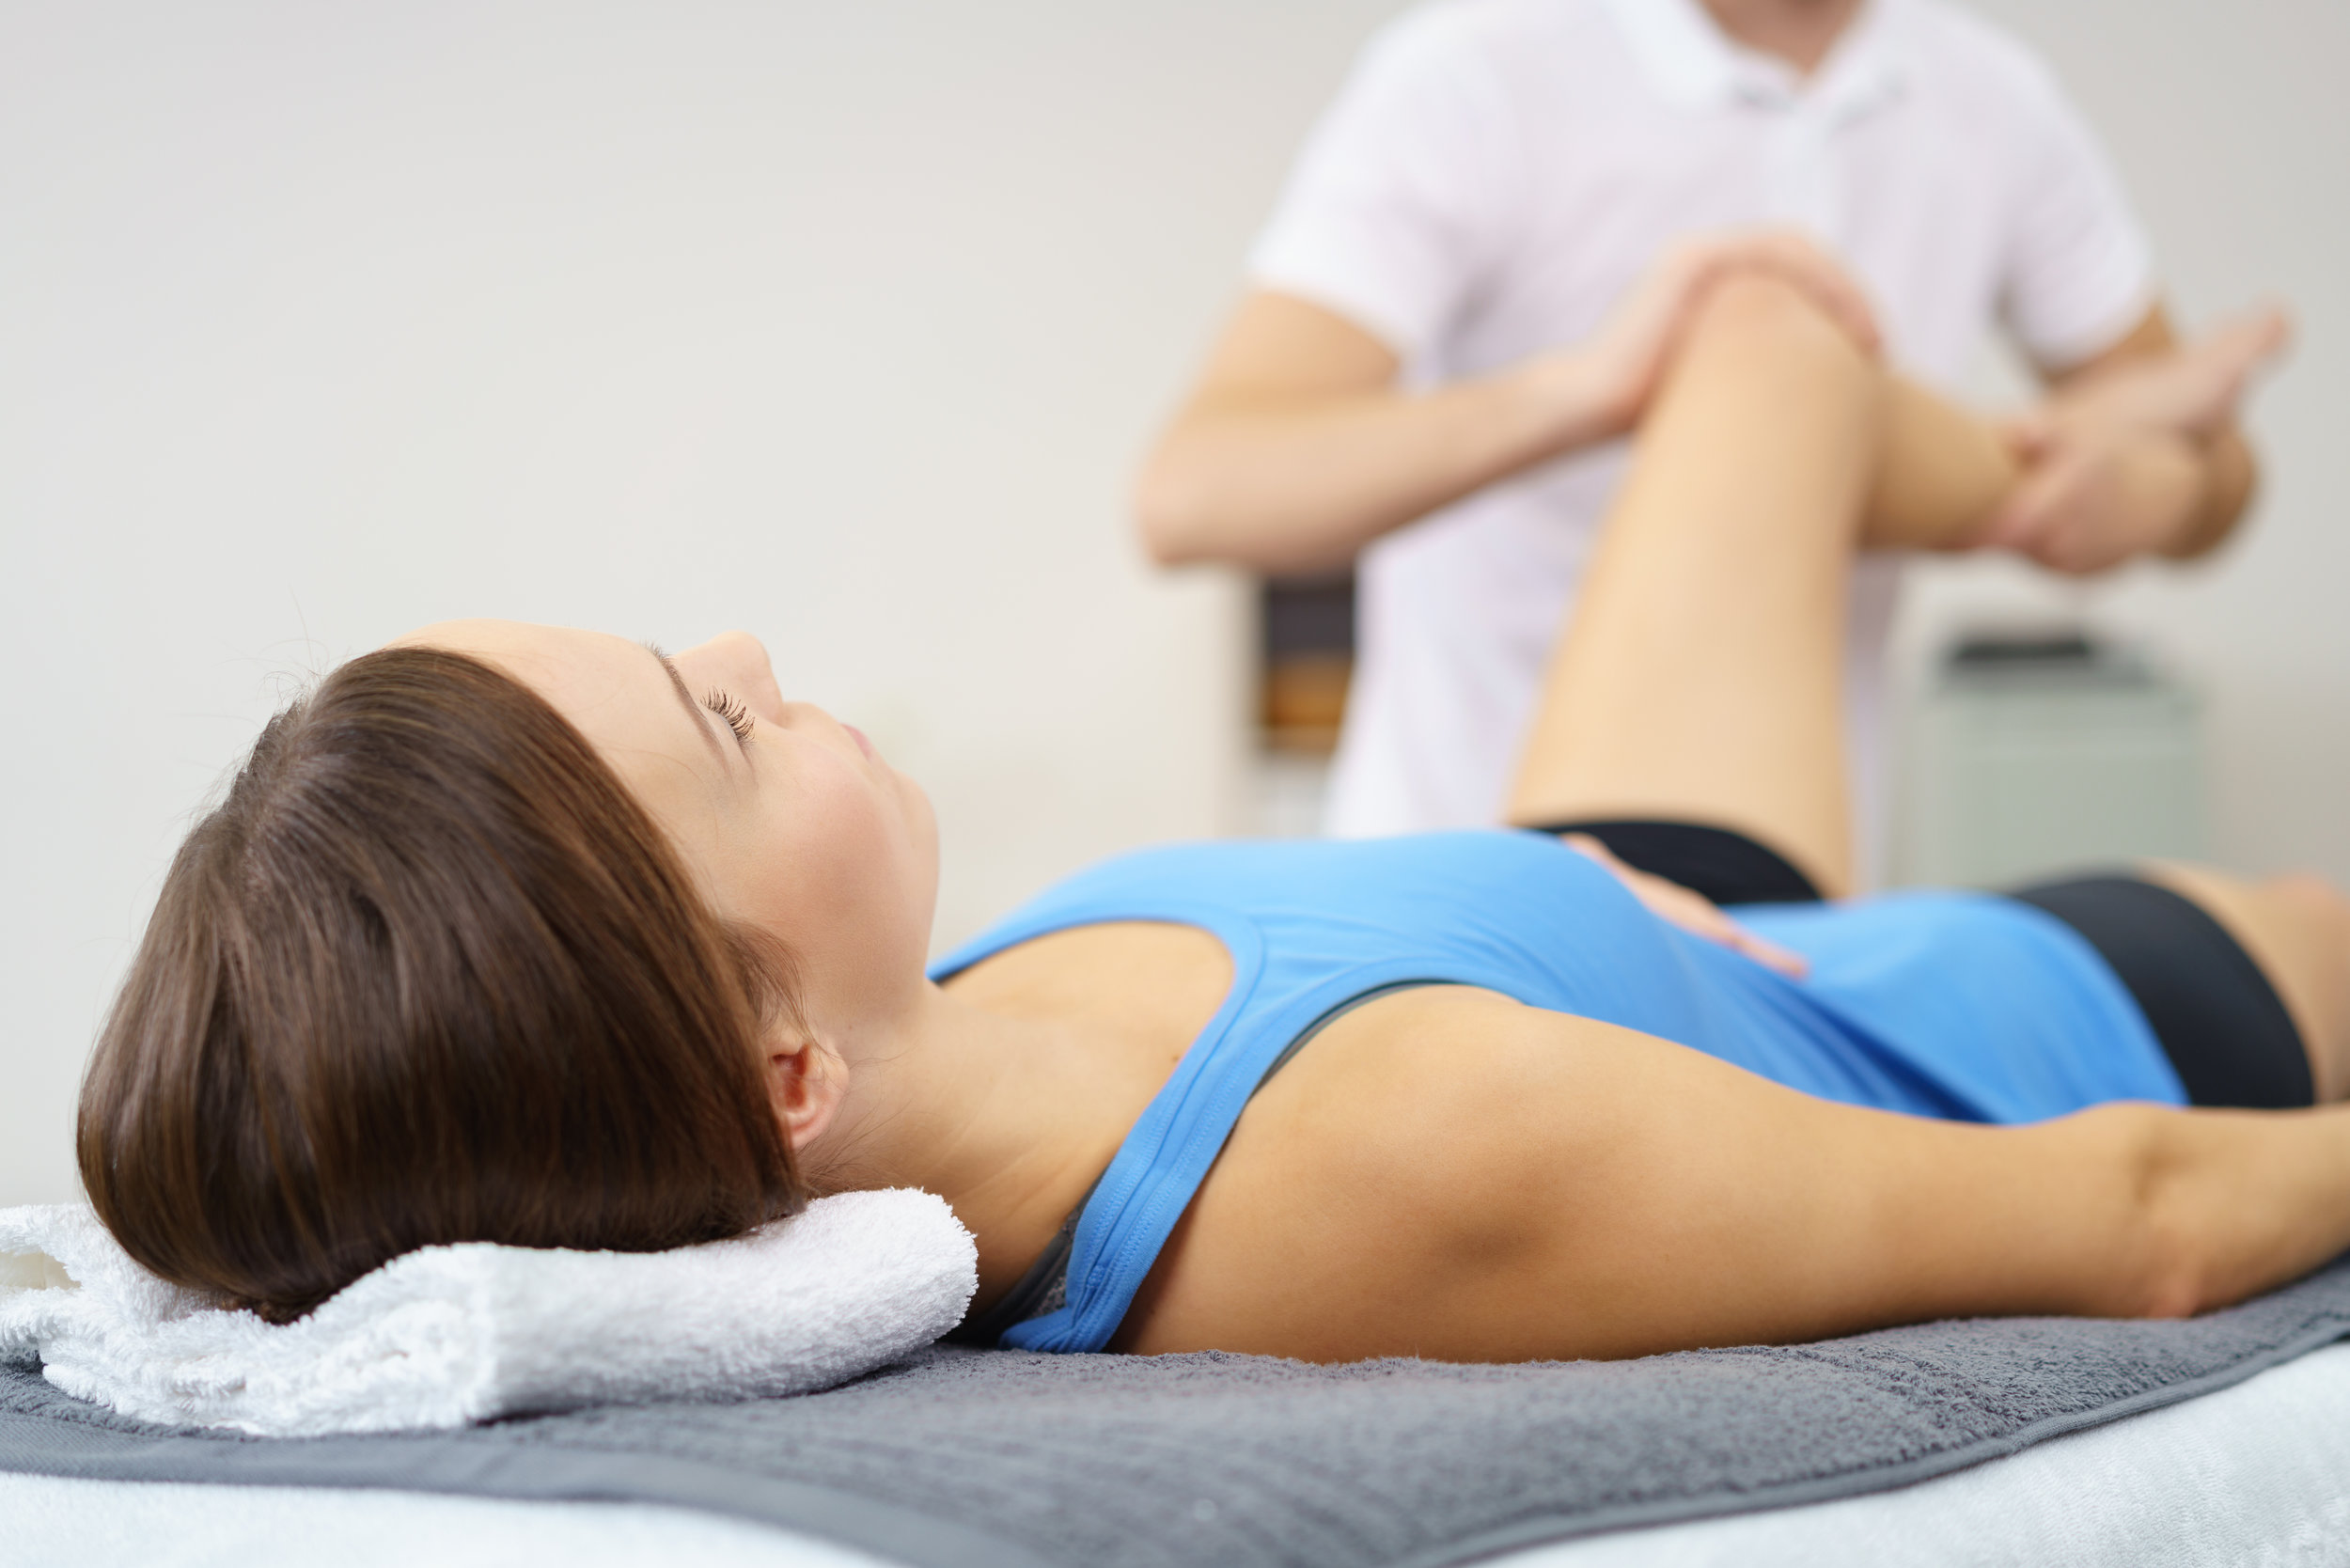 What is osteopathy? - Osteopathy is a form of hands on therapy that acknowledges the link between the body's structure and function. Osteopaths are trained to take a medical case history, and examination to provide you with an accurate diagnosis and treatment.Our aim is to help you understand your condition and identify any causative or maintaining influences. We provide you with appropriate rehabilitative and ergonomic advice to help resolve your pain.Learn More